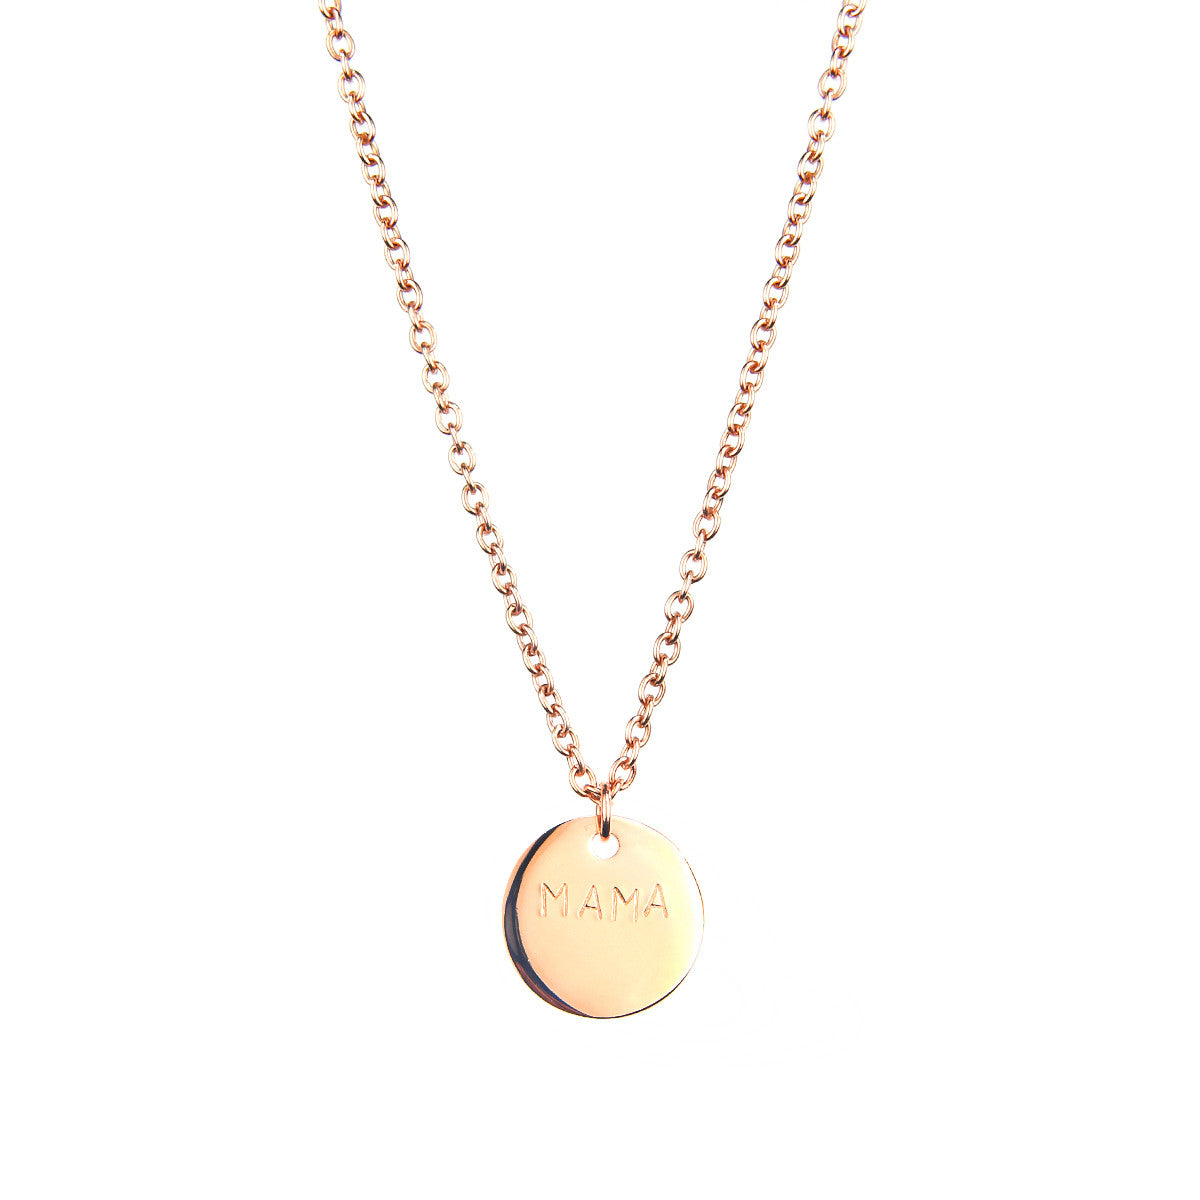 mamanecklace mama jennifer meyer necklace products